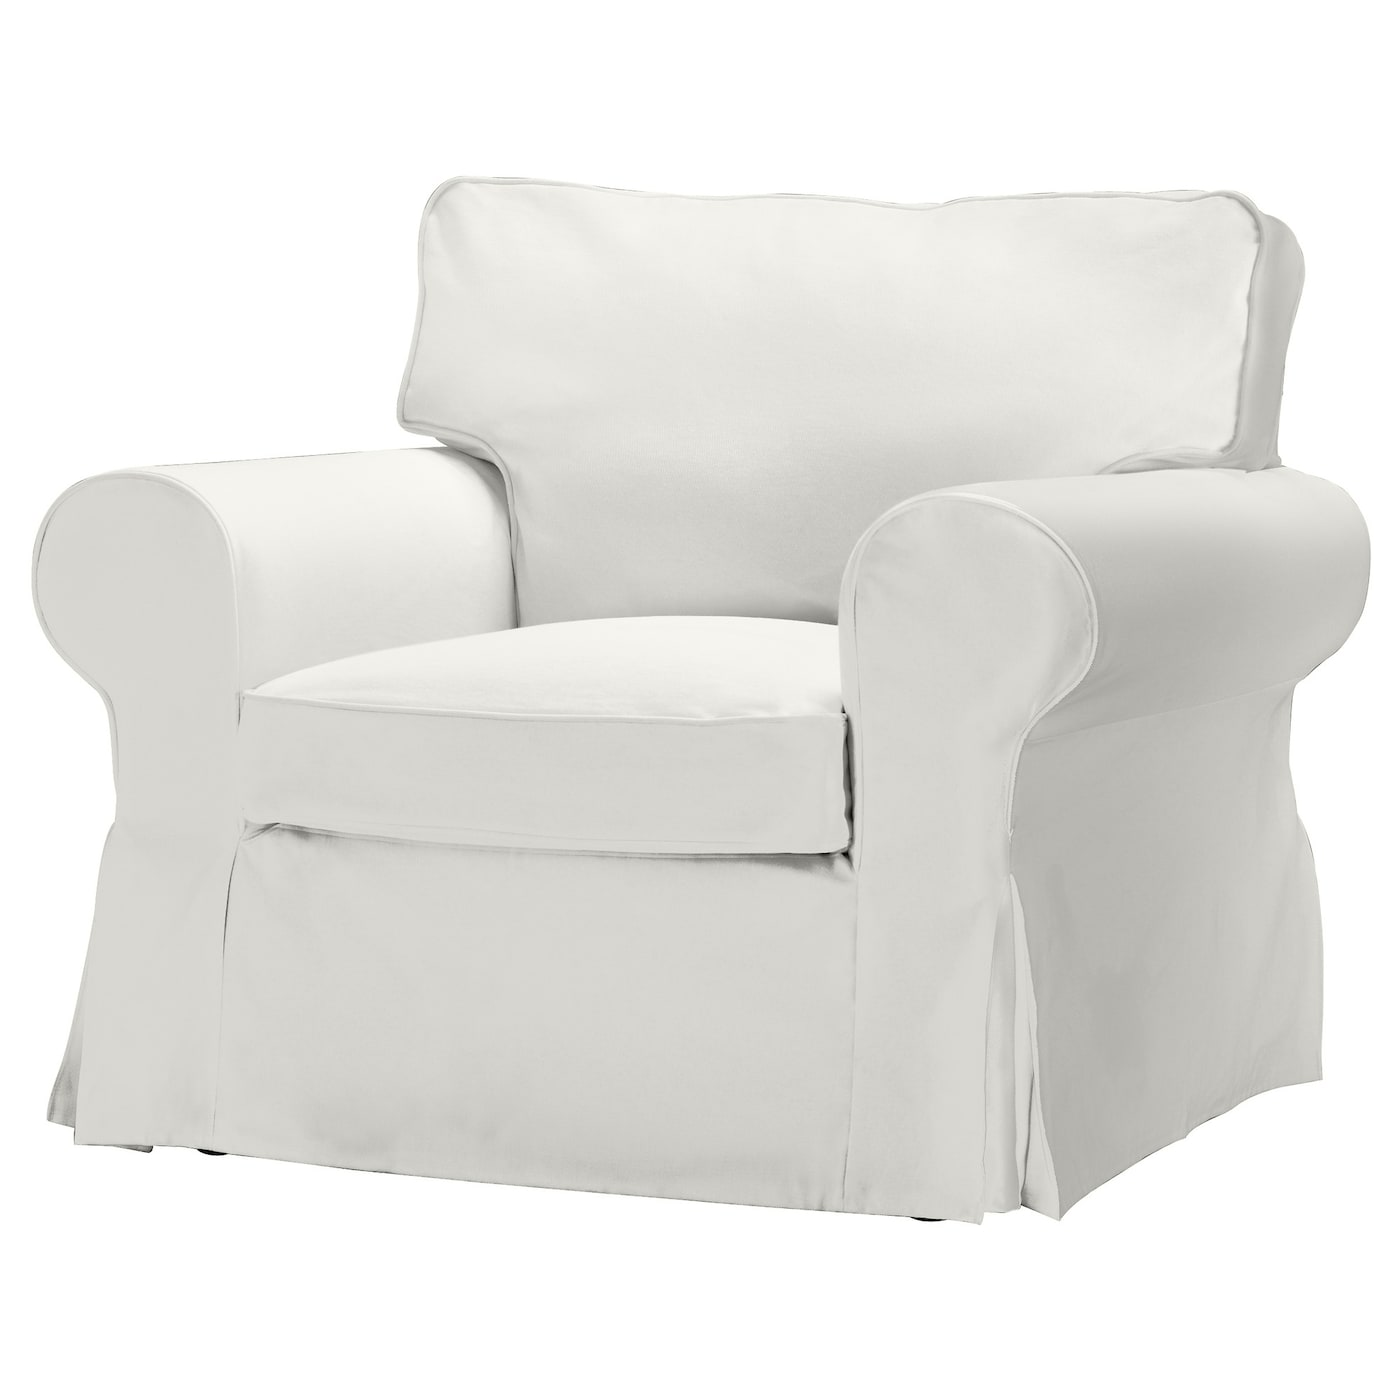 ektorp armchair blekinge white ikea. Black Bedroom Furniture Sets. Home Design Ideas